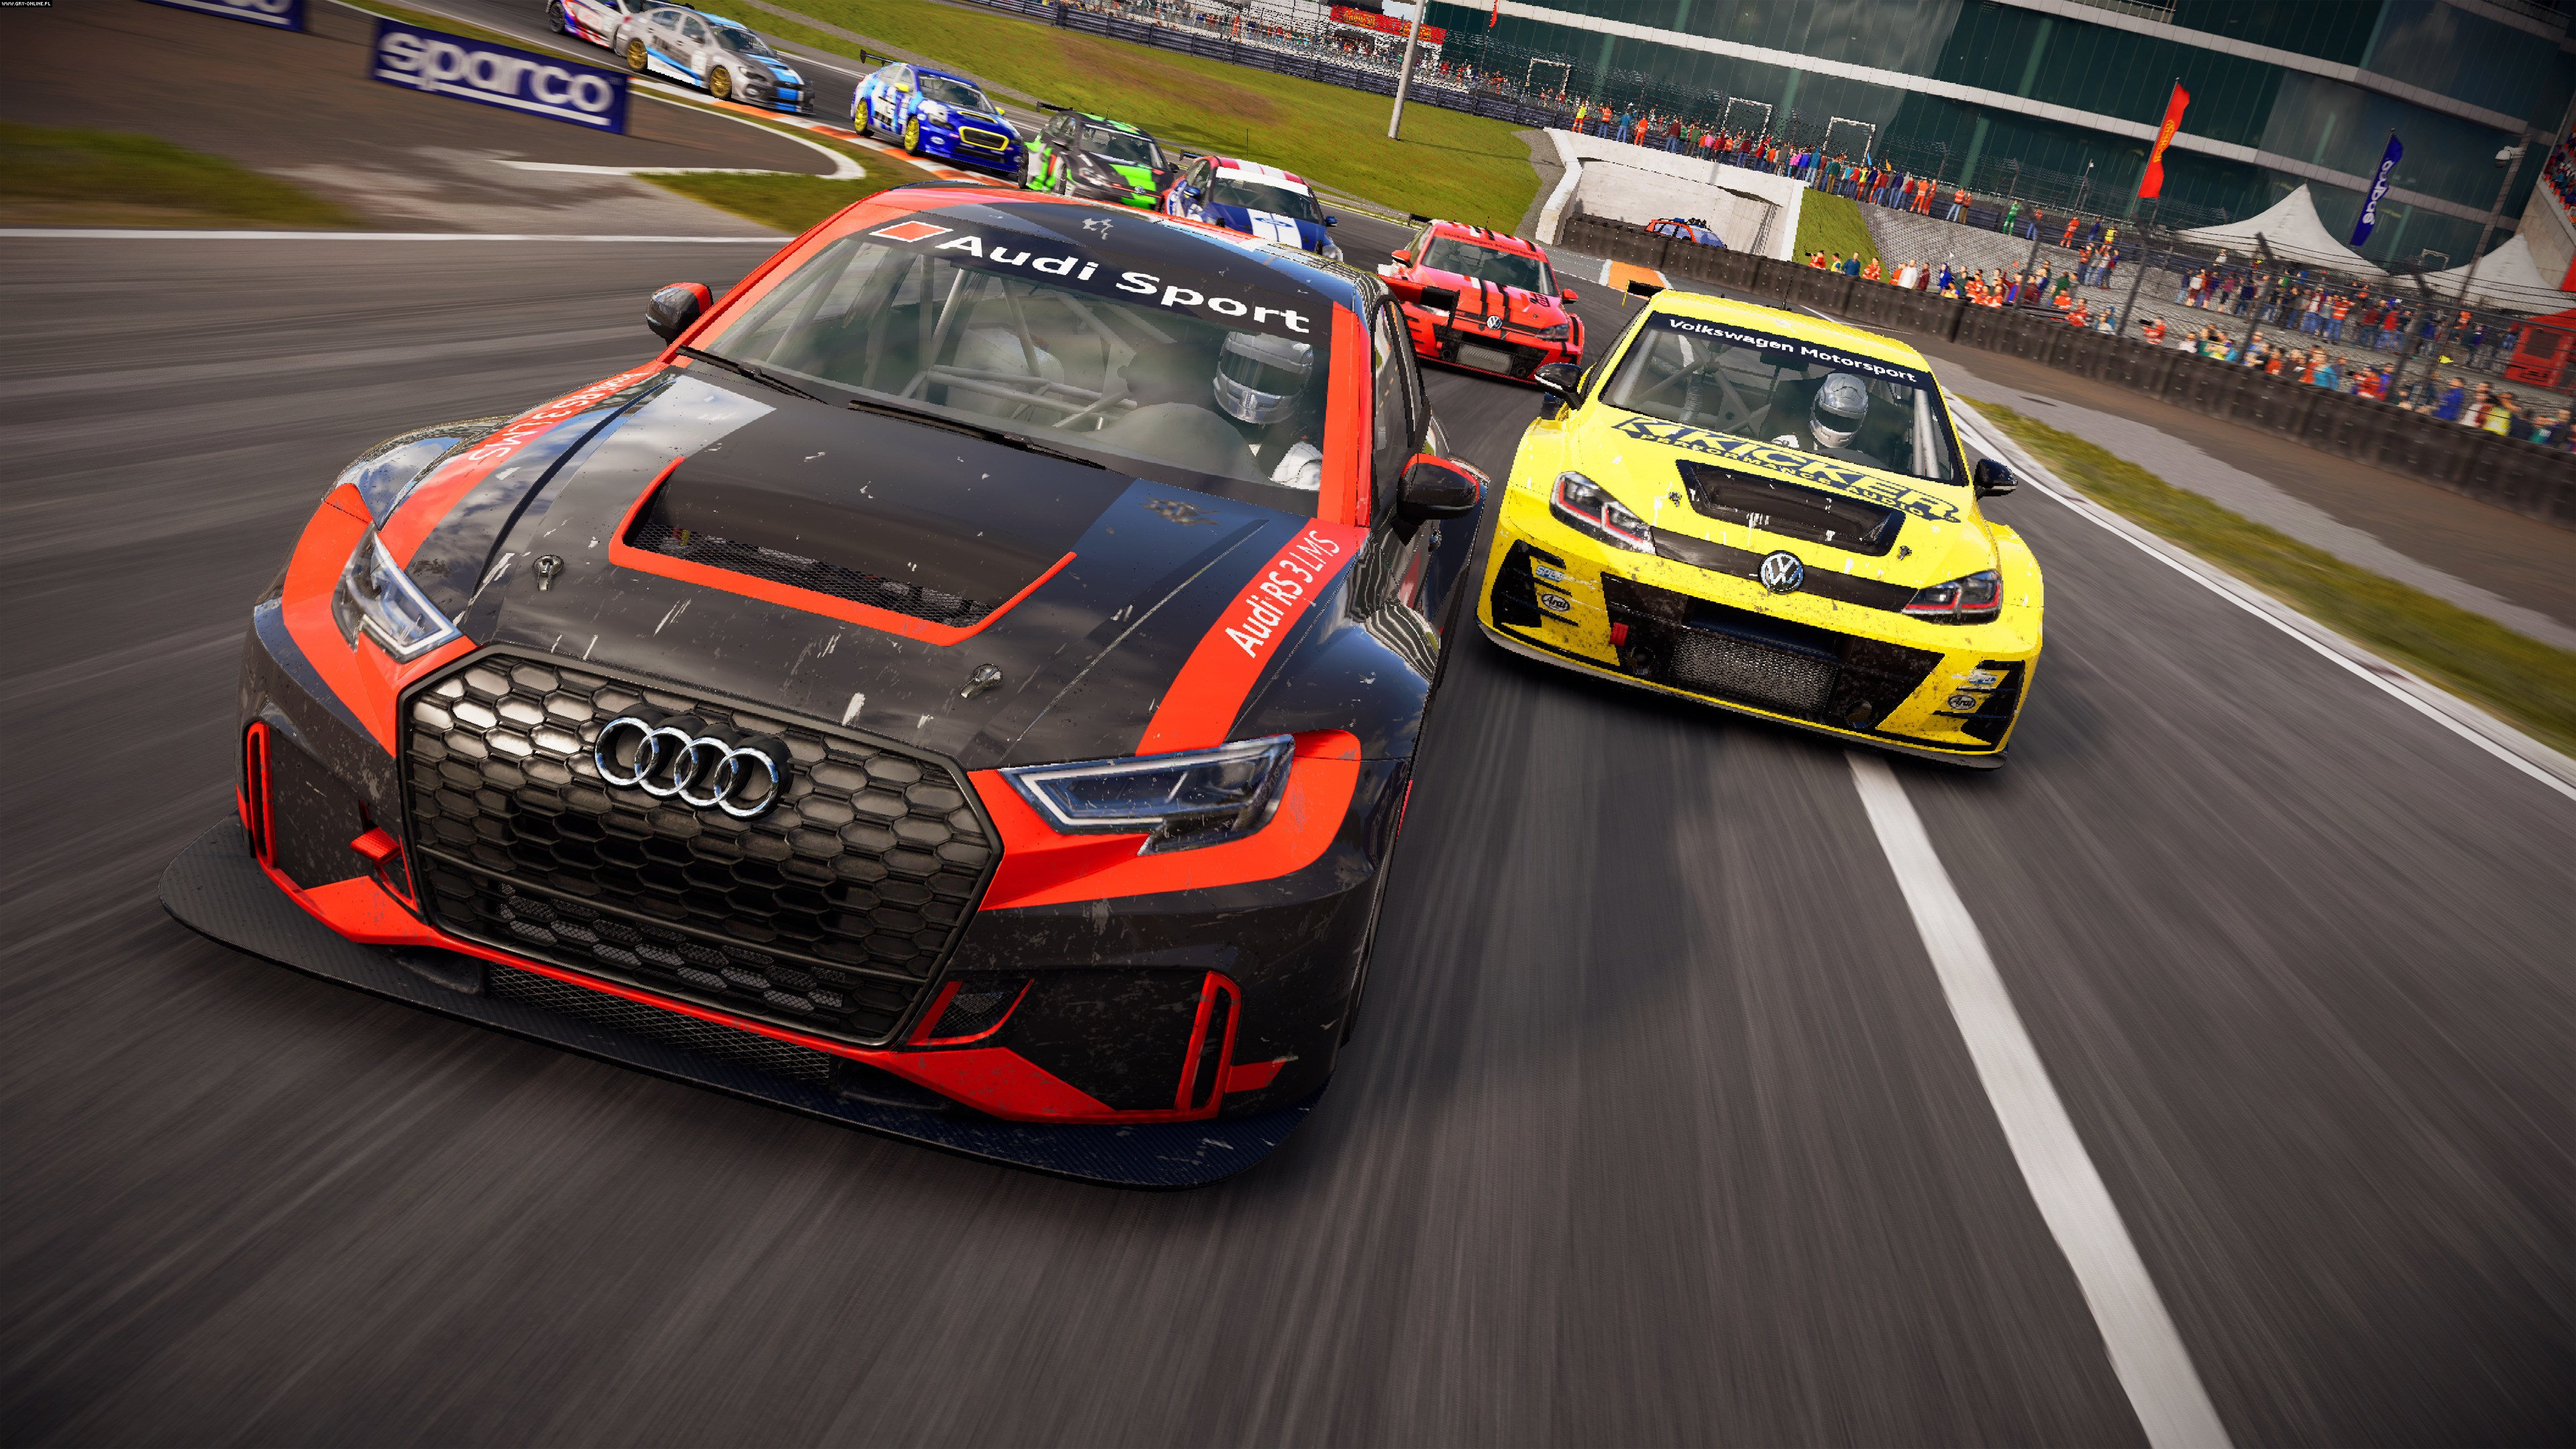 GRID PC, PS4, XONE Games Image 31/49, Codemasters Software